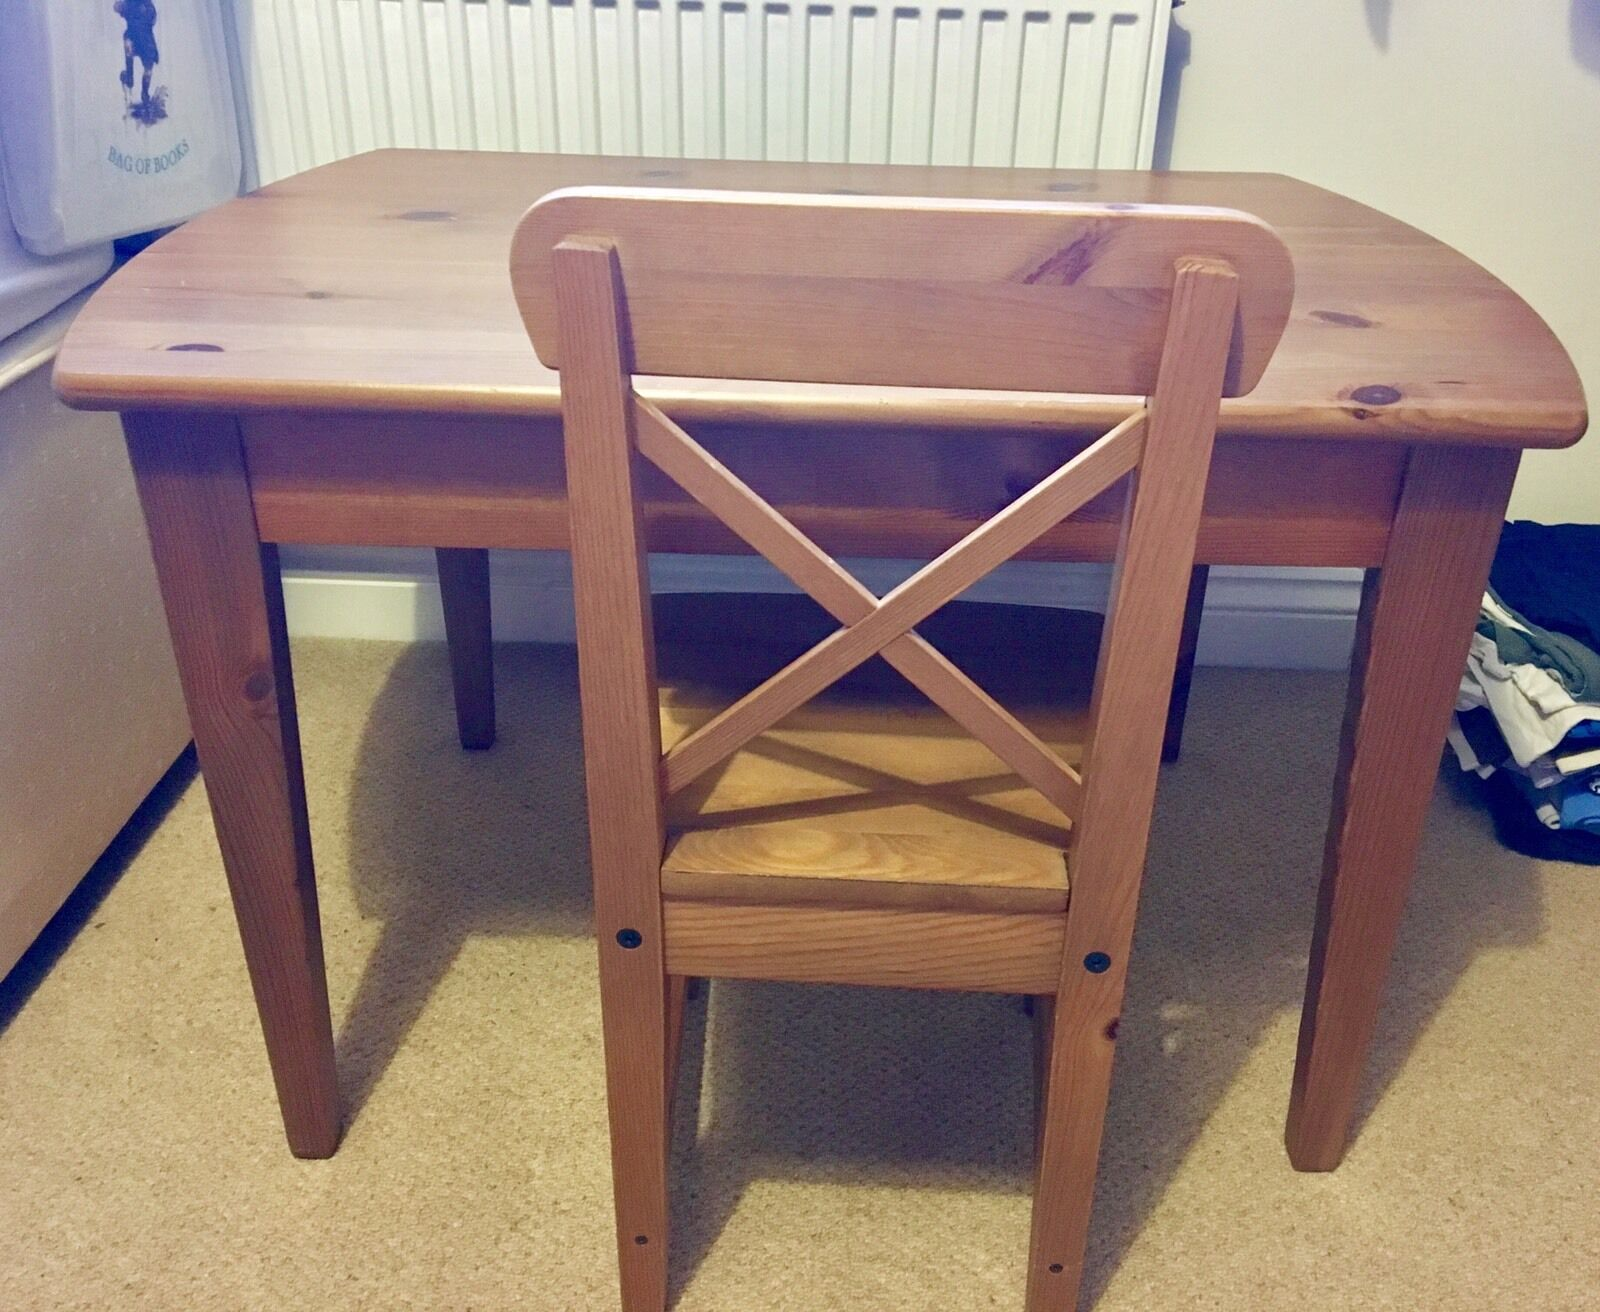 Kids Wooden Table And Chairs • £4 99 Pic UK